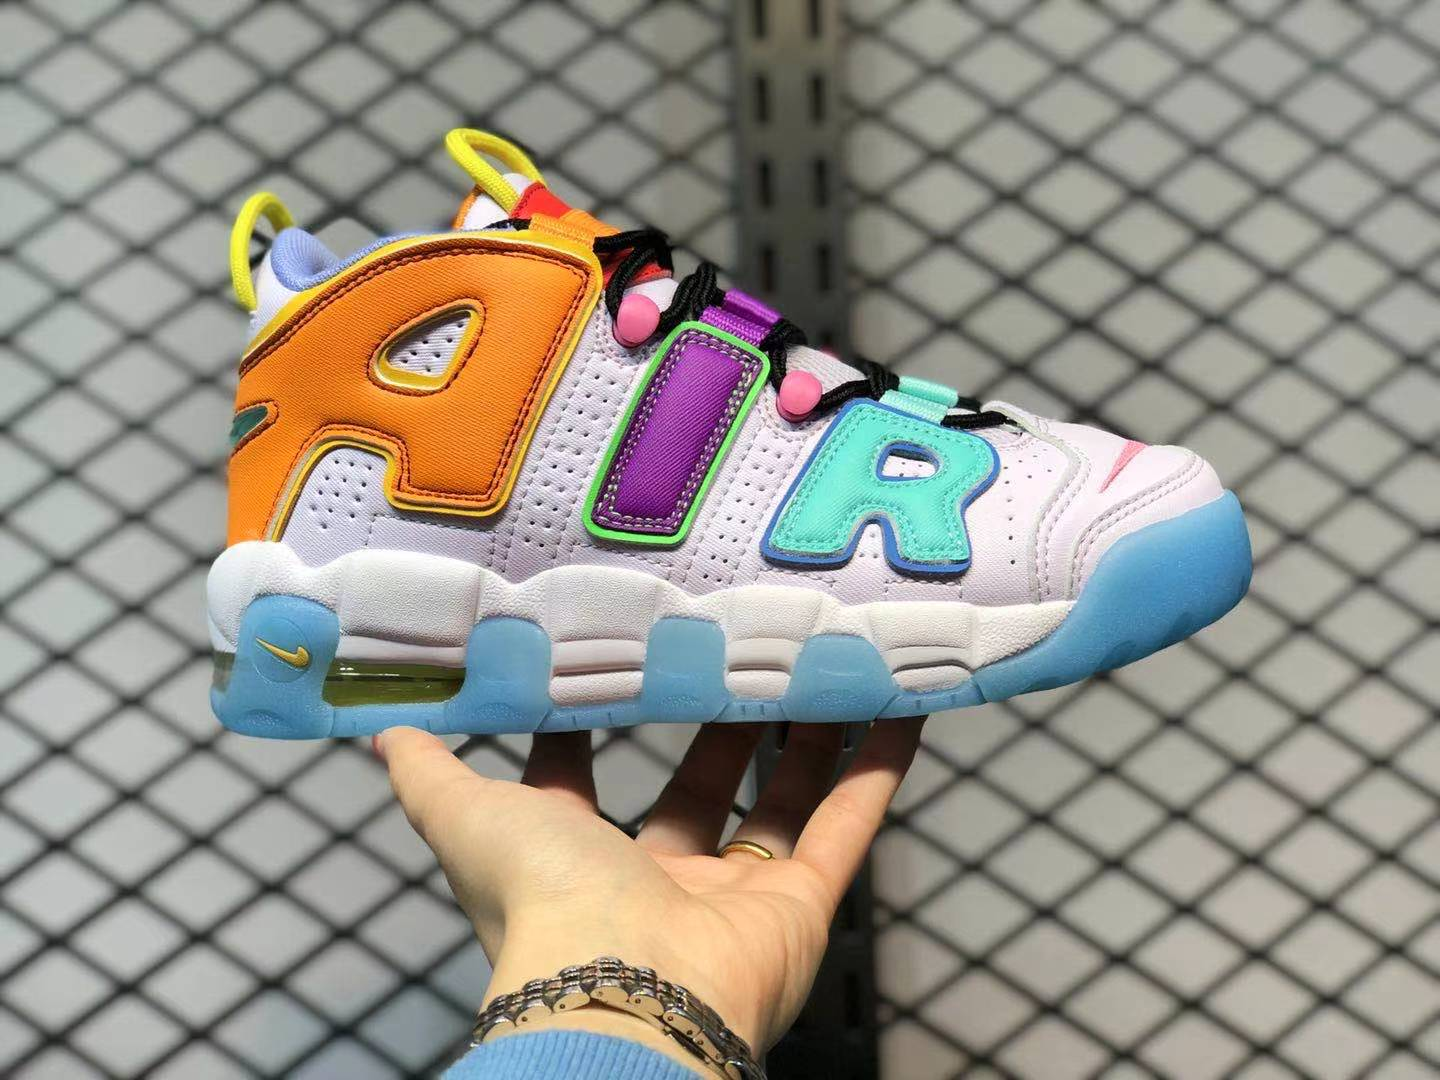 Nike Air More Uptempo Multicolor DH0624-500 To Buy